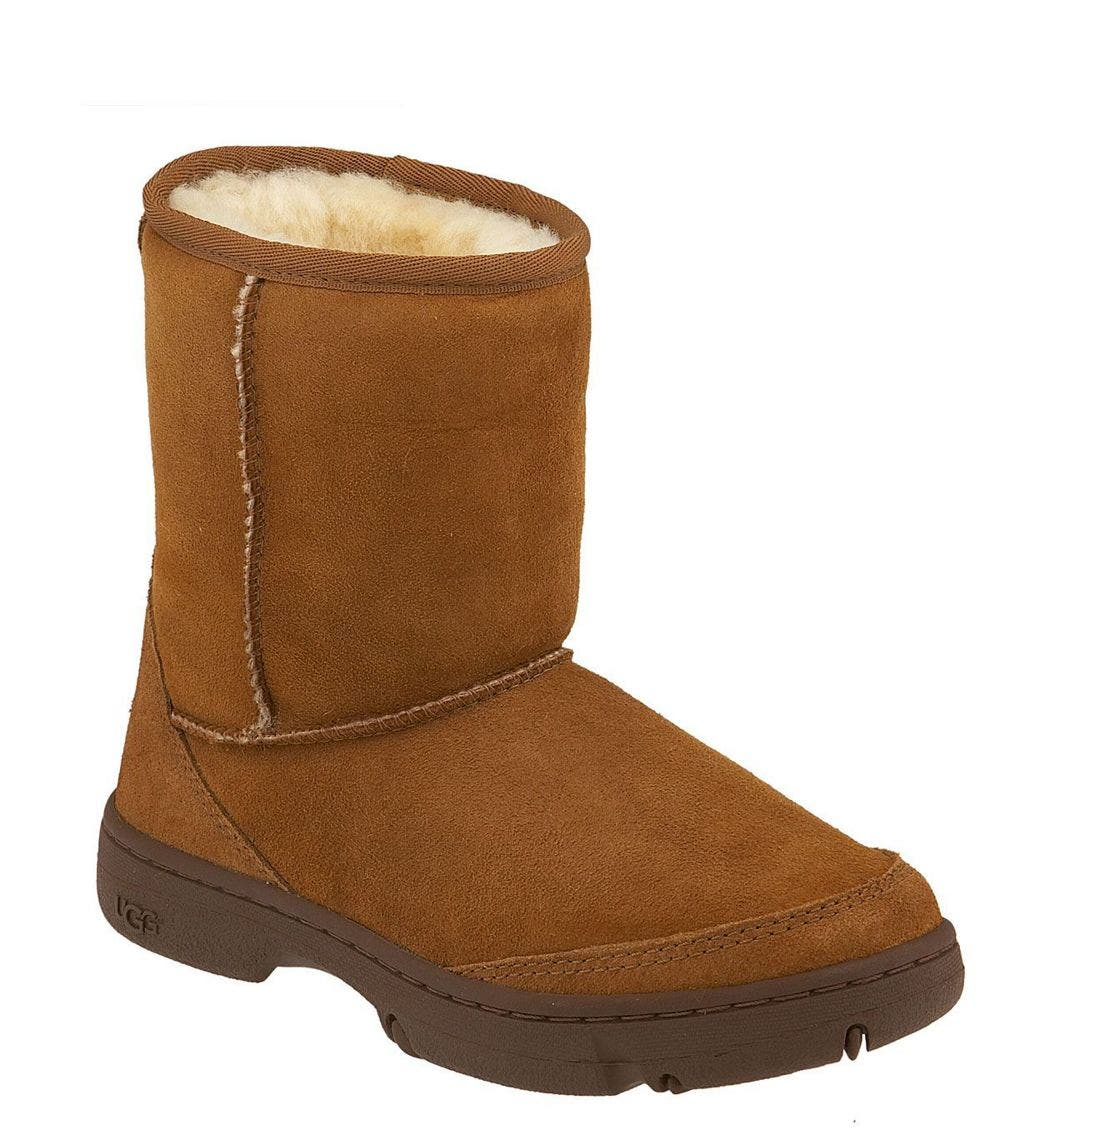 Alternate Image 1 Selected - UGG® Australia 'Ultimate' Boot (Toddler, Little Kid & Big Kid)